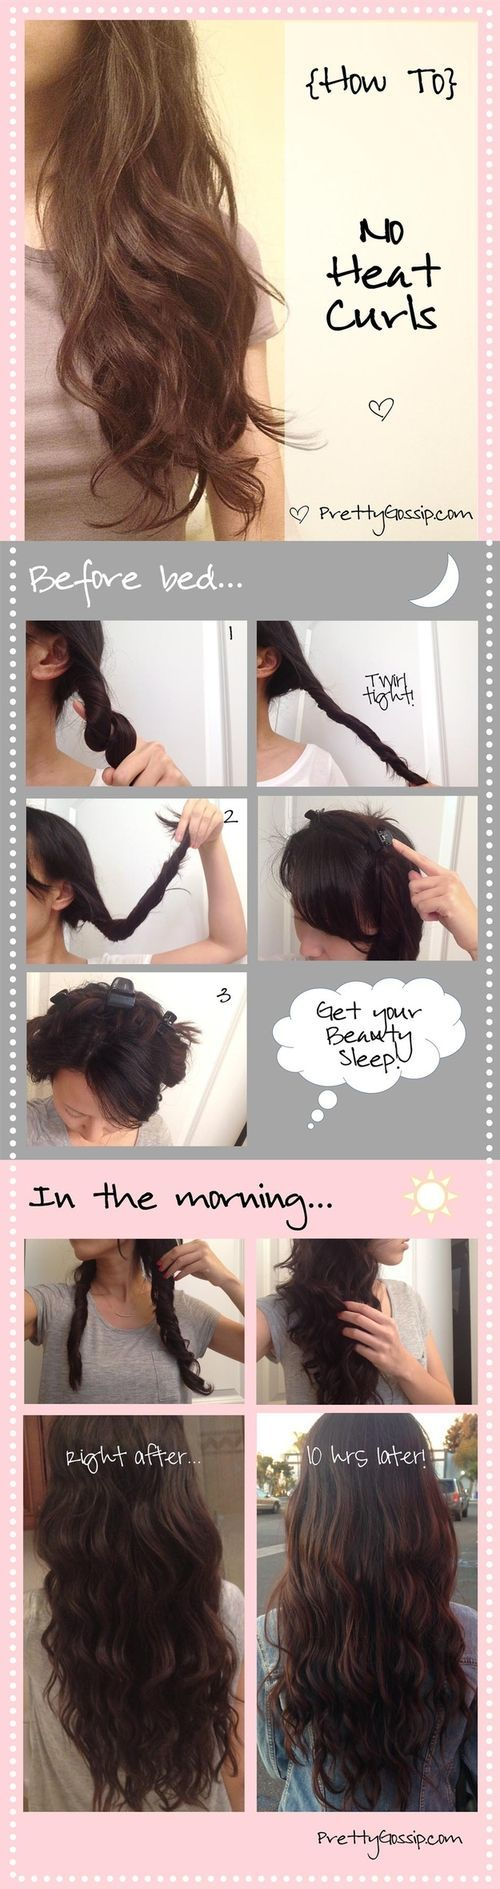 Tremendous 1000 Ideas About Damp Hair Styles On Pinterest Damaged Hair Hairstyle Inspiration Daily Dogsangcom